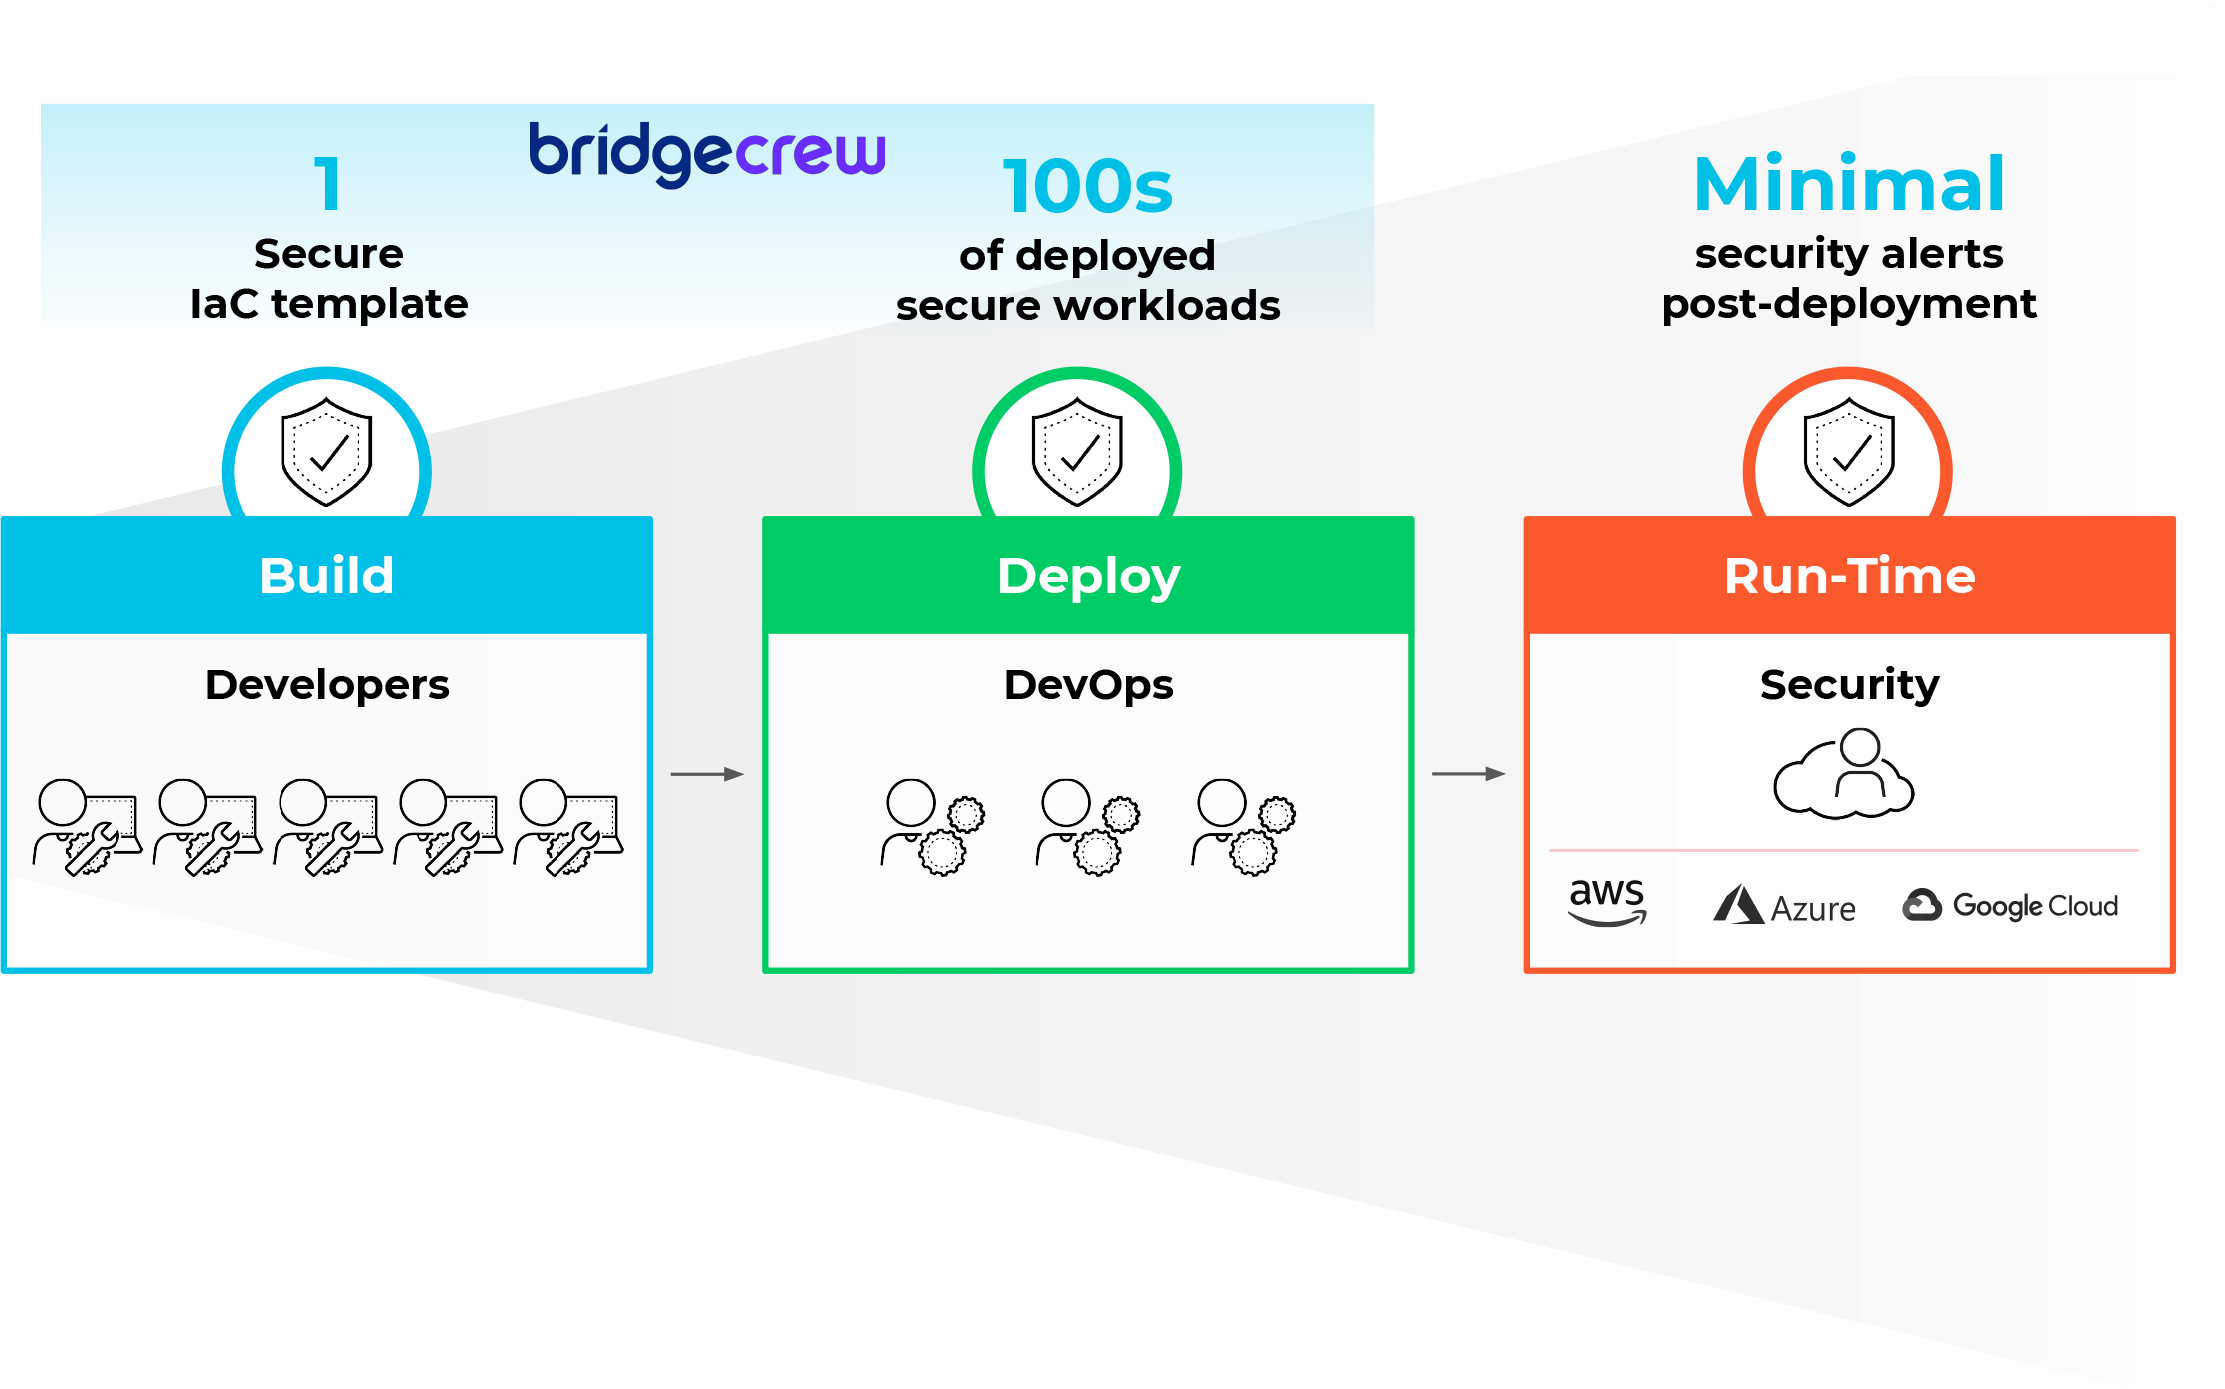 This shows the contrast of what Bridgecrew can provide: One secure IaC template, leading to hundreds of deployed secure workloads, leading to minimal security alerts post-deployment.